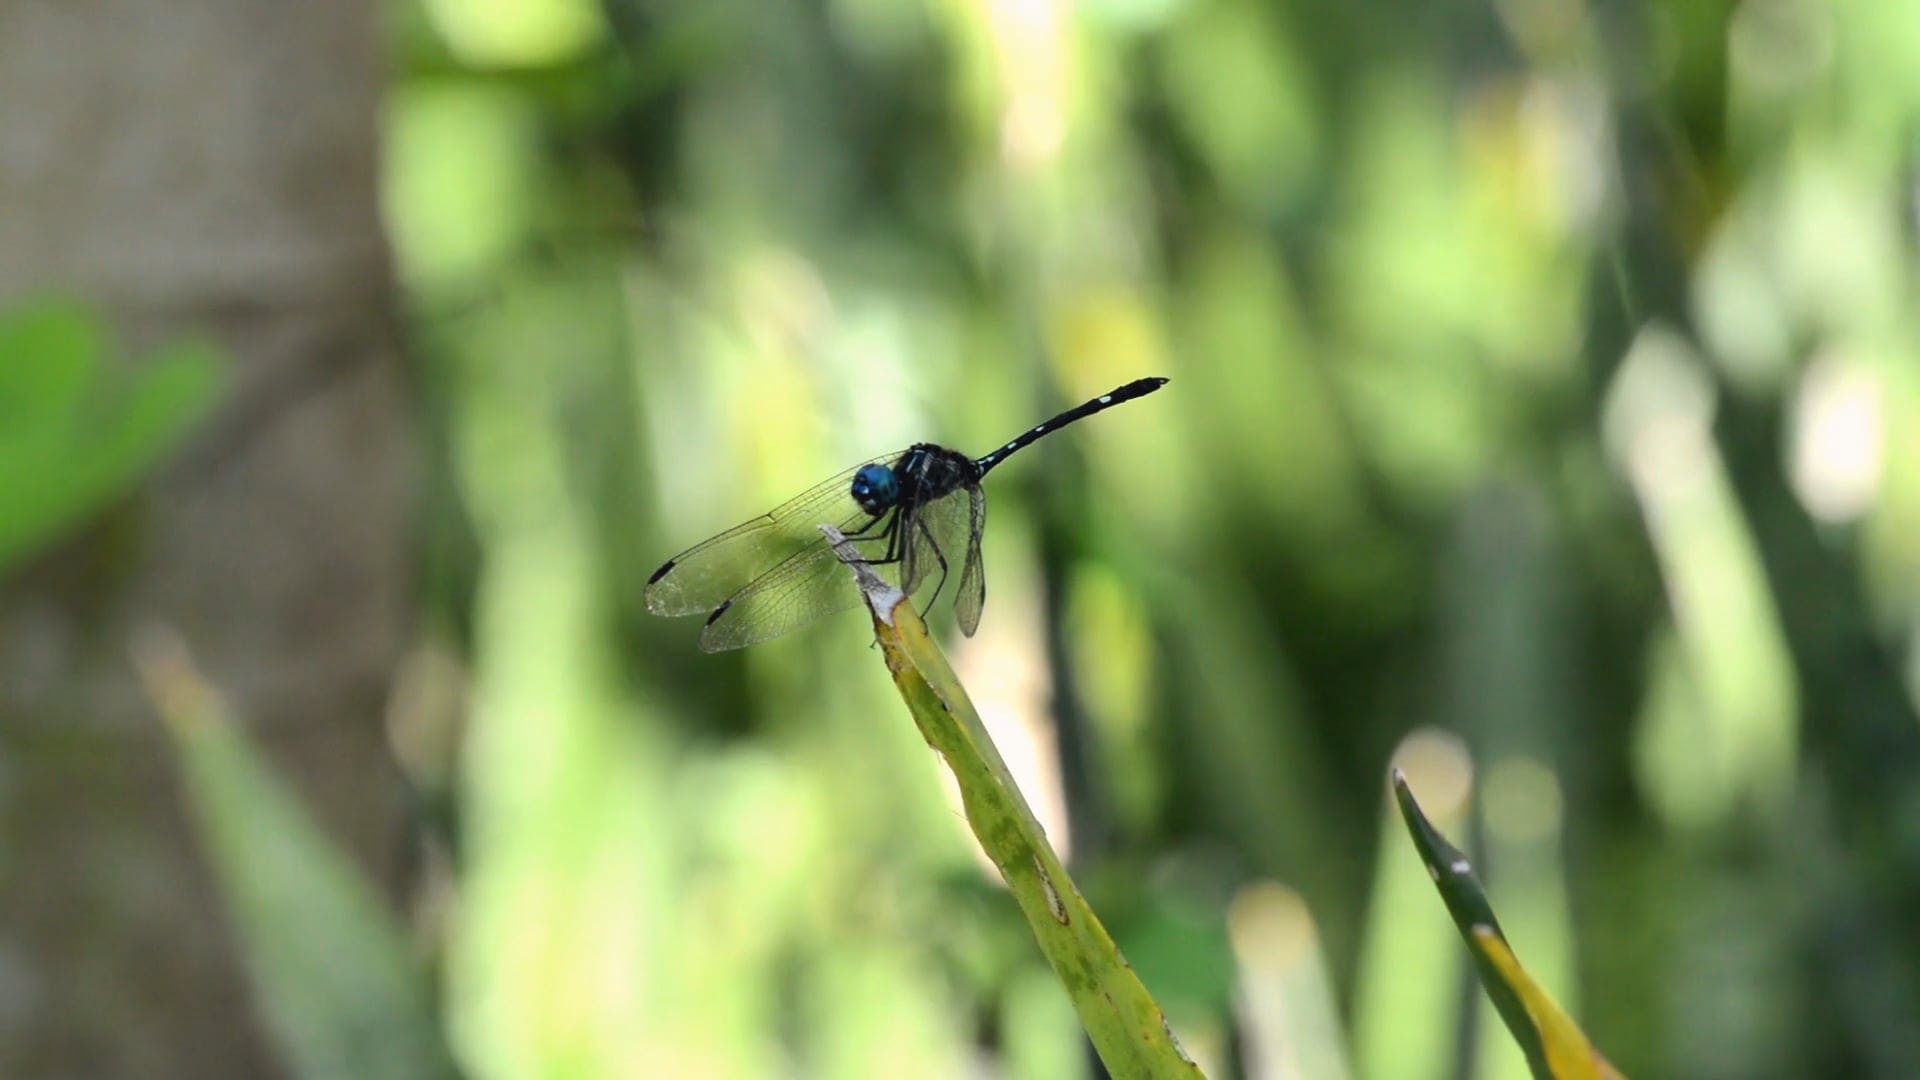 Close View Of A Dragonfly On A Leaf